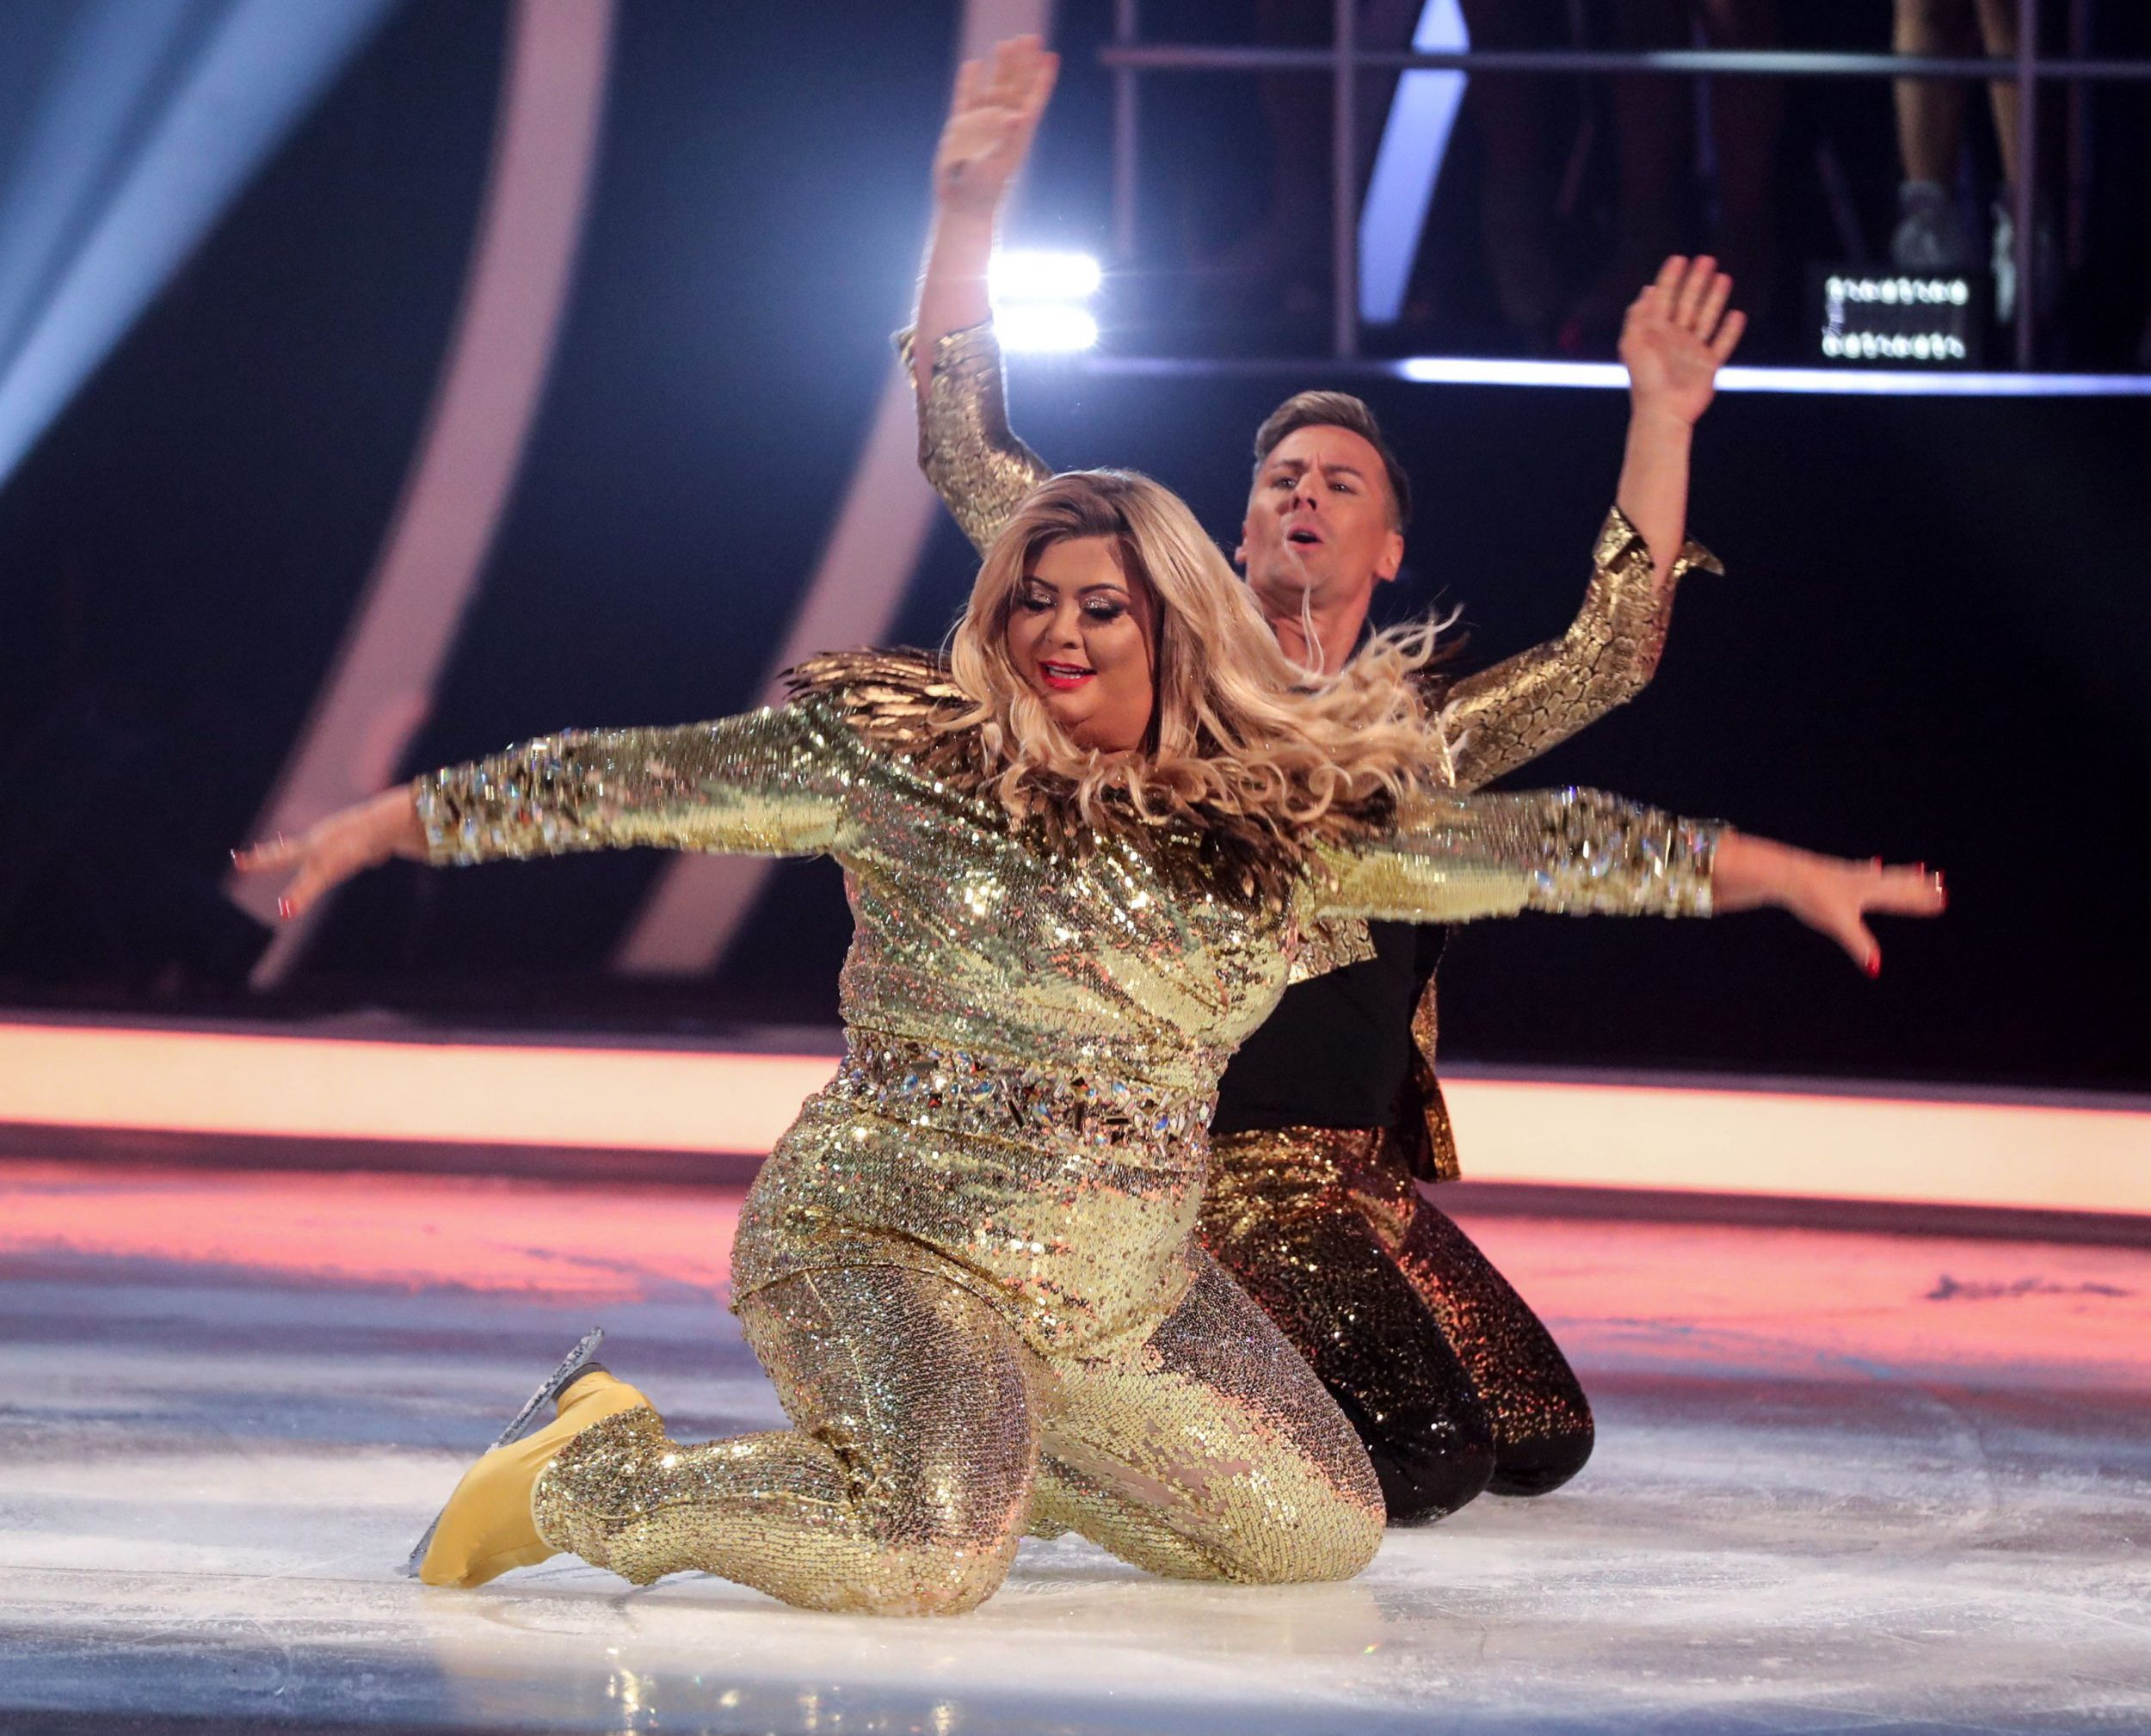 Matt Evers confirms he had little rehearsal time with Gemma Collins amid Dancing On Ice feud